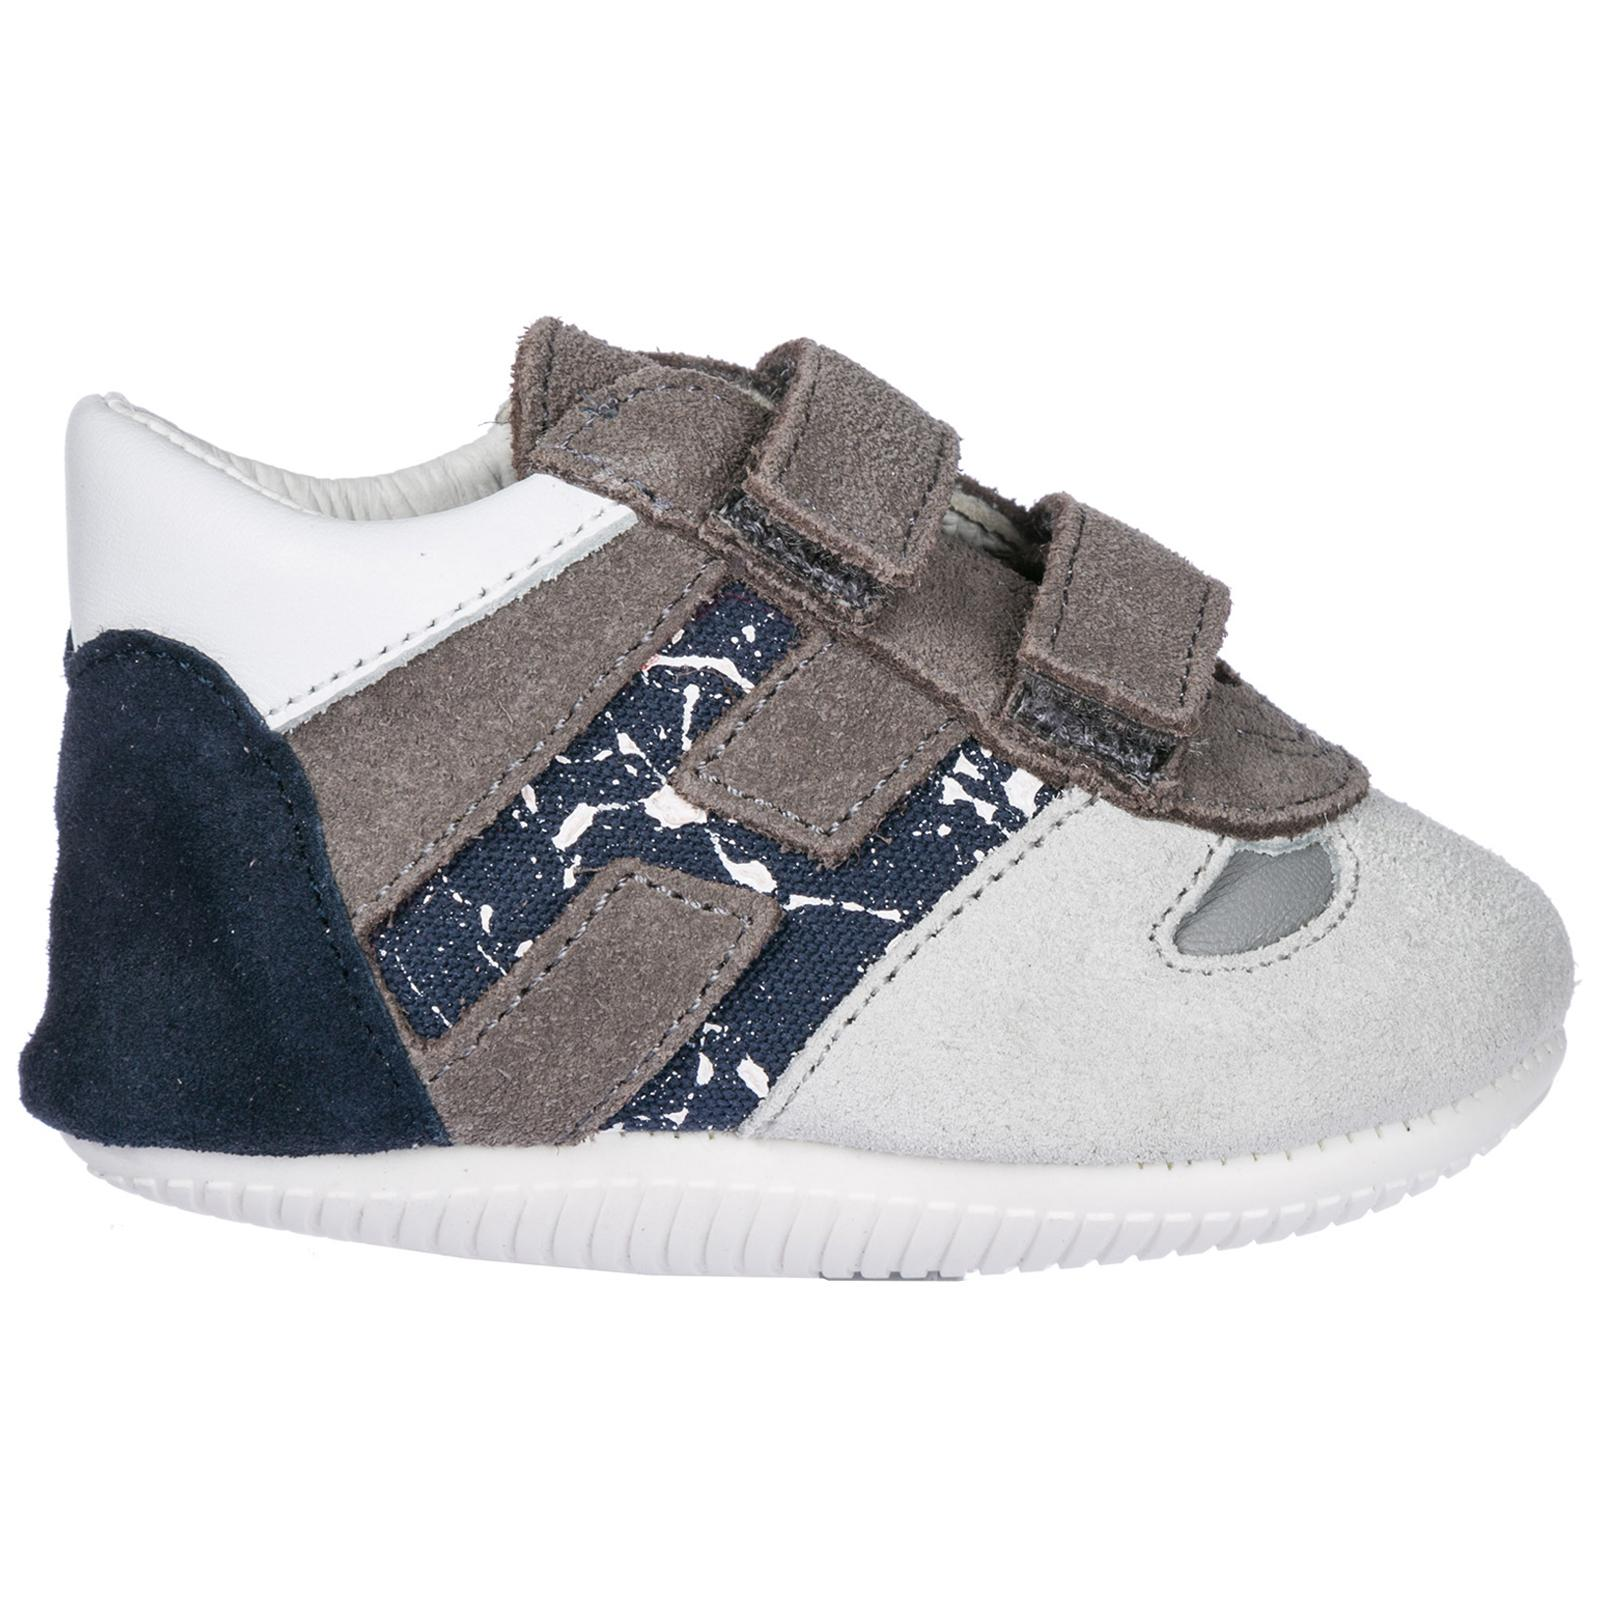 Men's Gray Boys Shoes Baby Child Sneakers Suede Leather Olympia